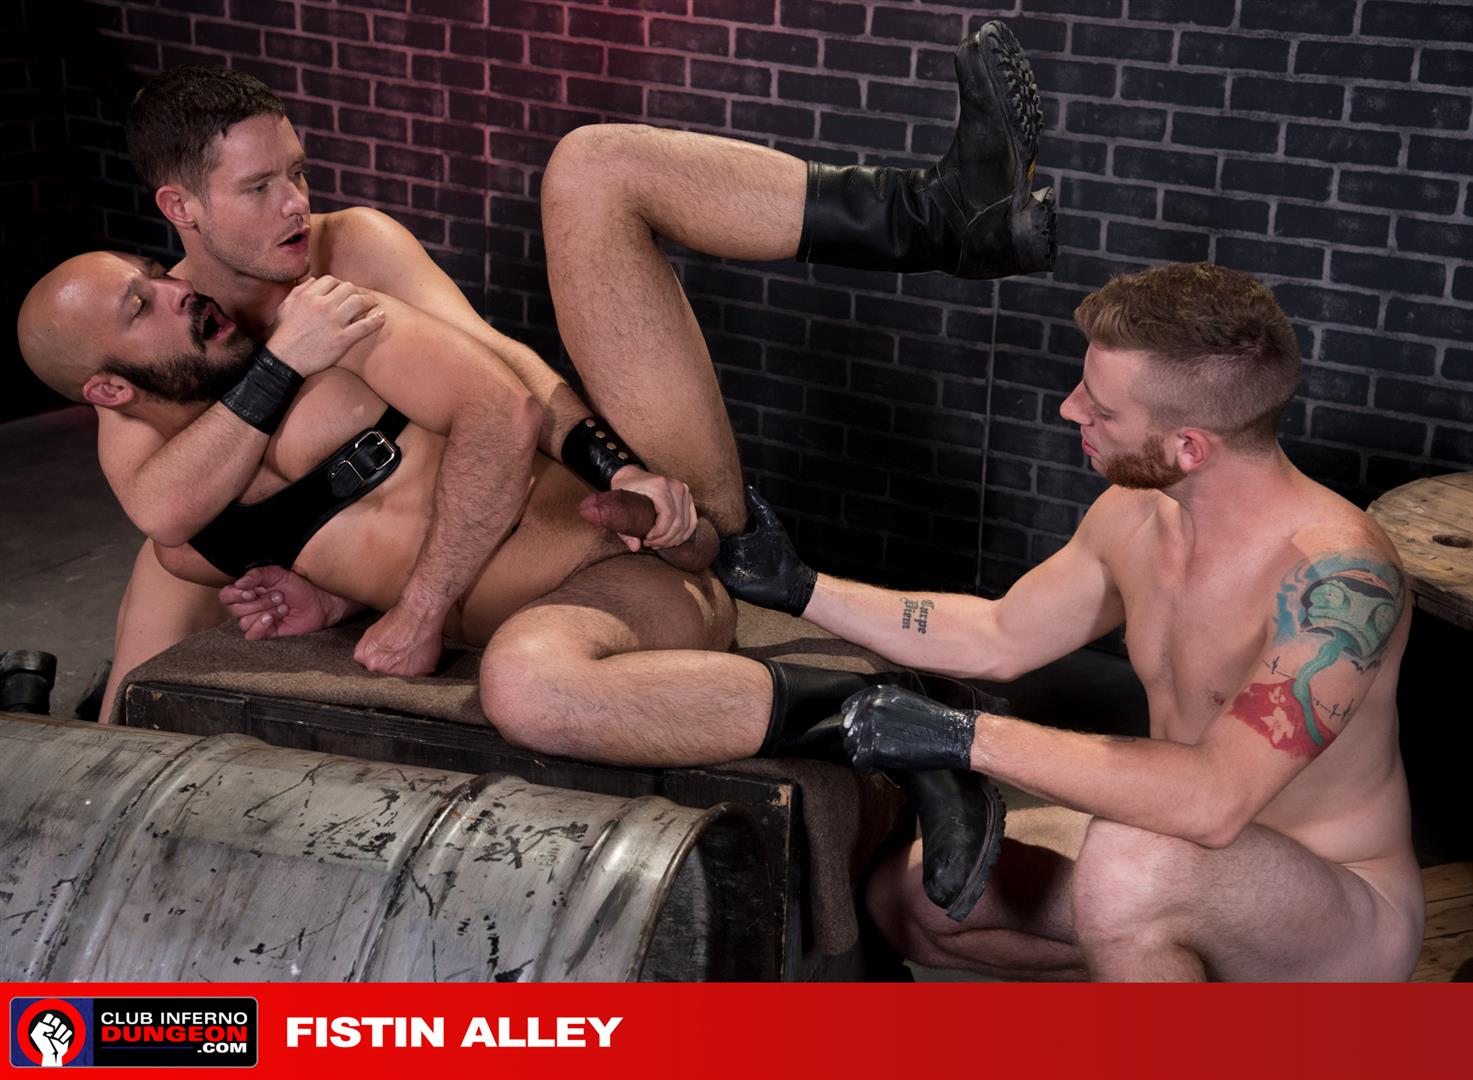 Club-Inferno-Dungeon-Sebastian-Keys-and-Dylan-Strokes-and-Ashley-Ryder-Fisting-11 Sebastian Keys and Ashley Ryder Get Their Asses Fisted